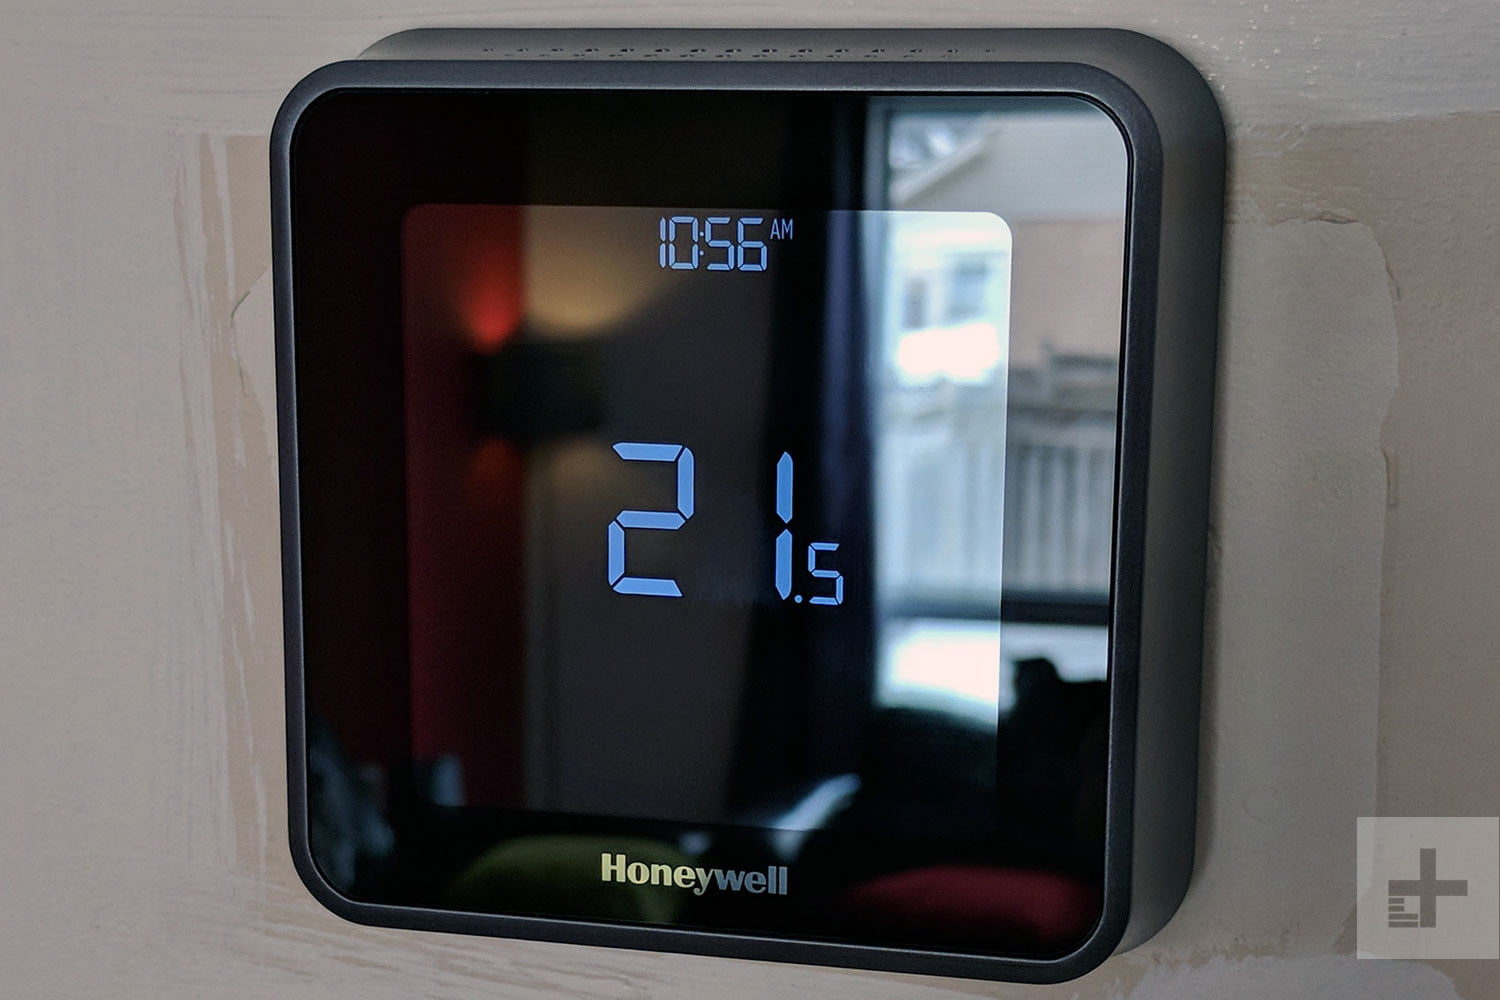 Honeywells Servers Went Down And Left Users Without Control Best Honeywell Thermostat Rth2410 Wiring Diagram Digital Trends